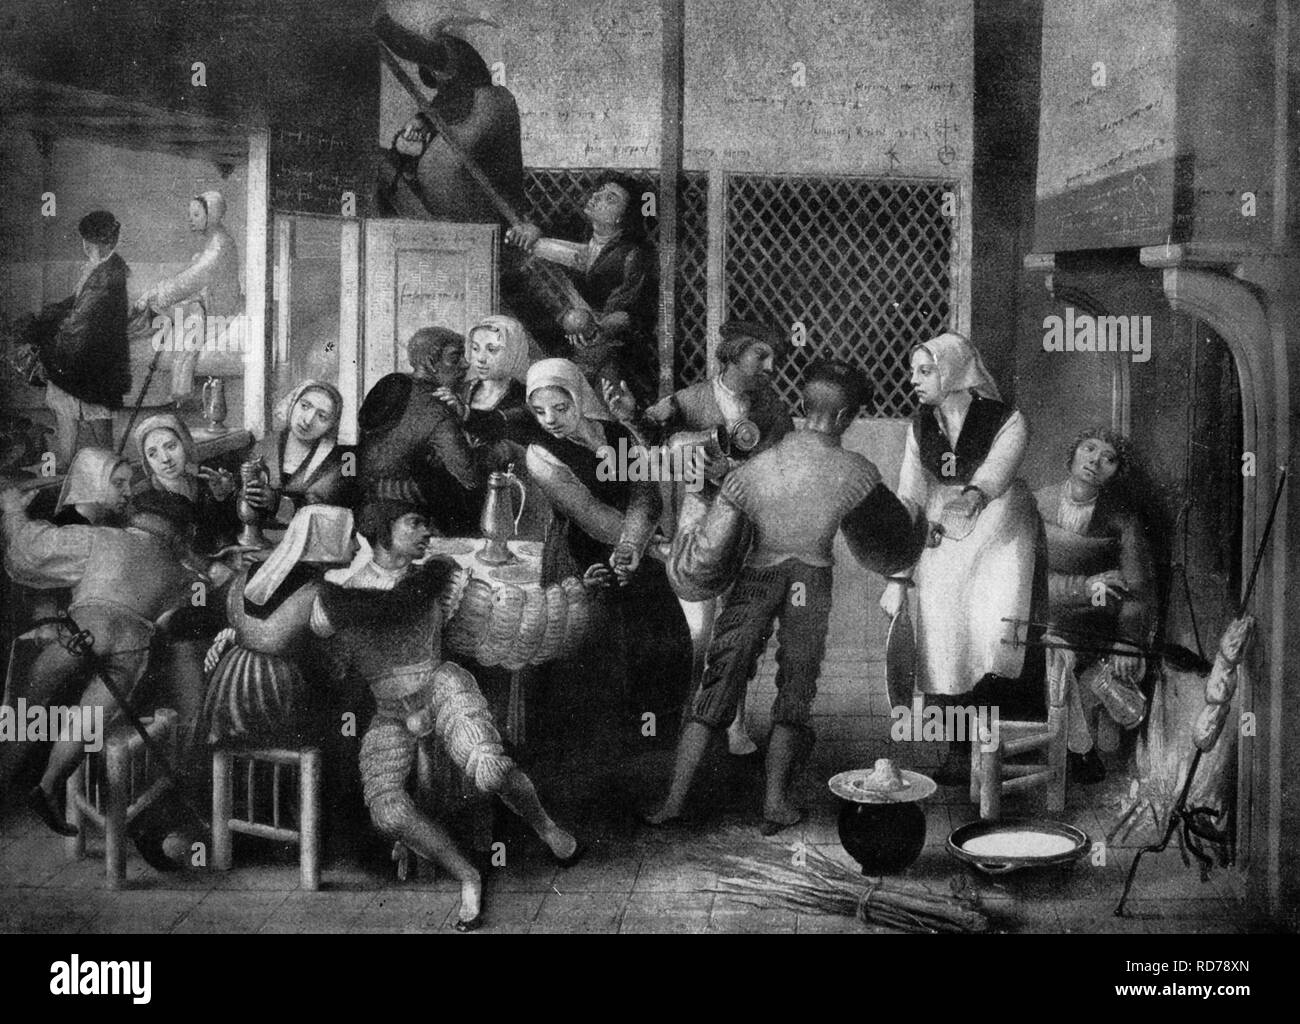 Life in a women's shelter, after a painting by Jan van Hemessen, 16th century, historical woodcut, circa 1865 - Stock Image